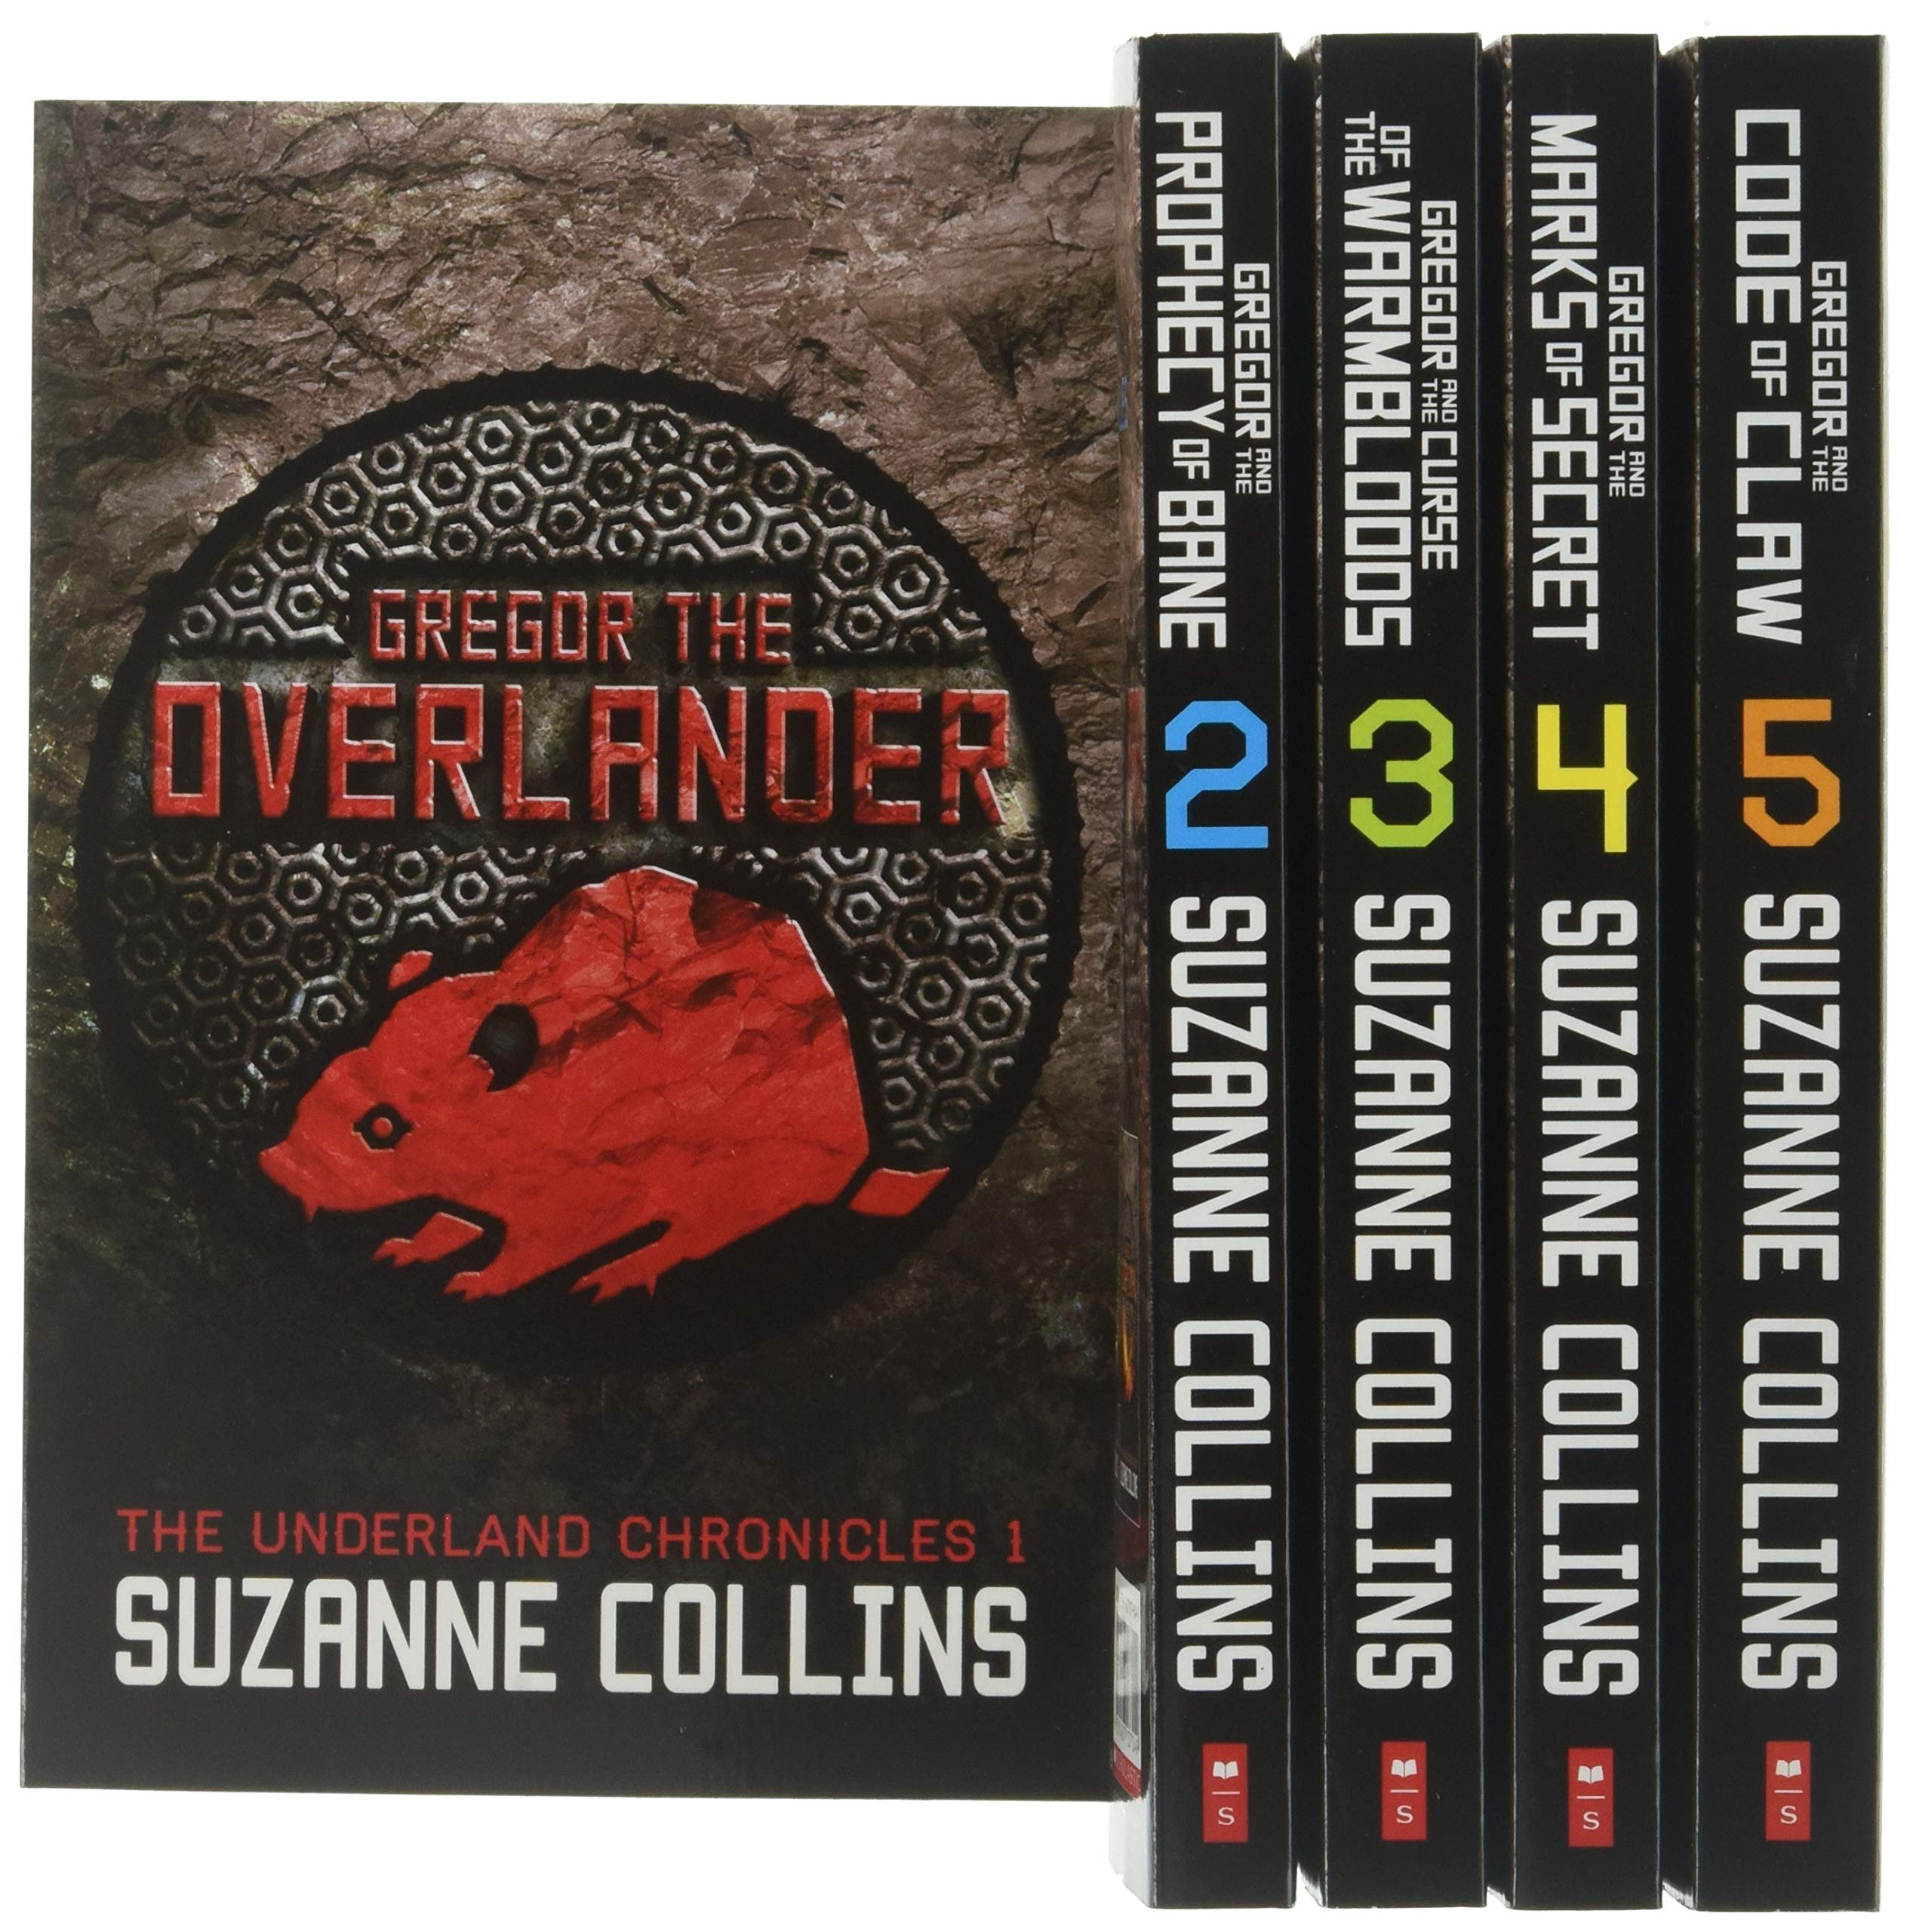 Suzanne Collins The Underland Chronicles 5 Books Set (1-5) Gregor The Overlander by SCHOLASTIC